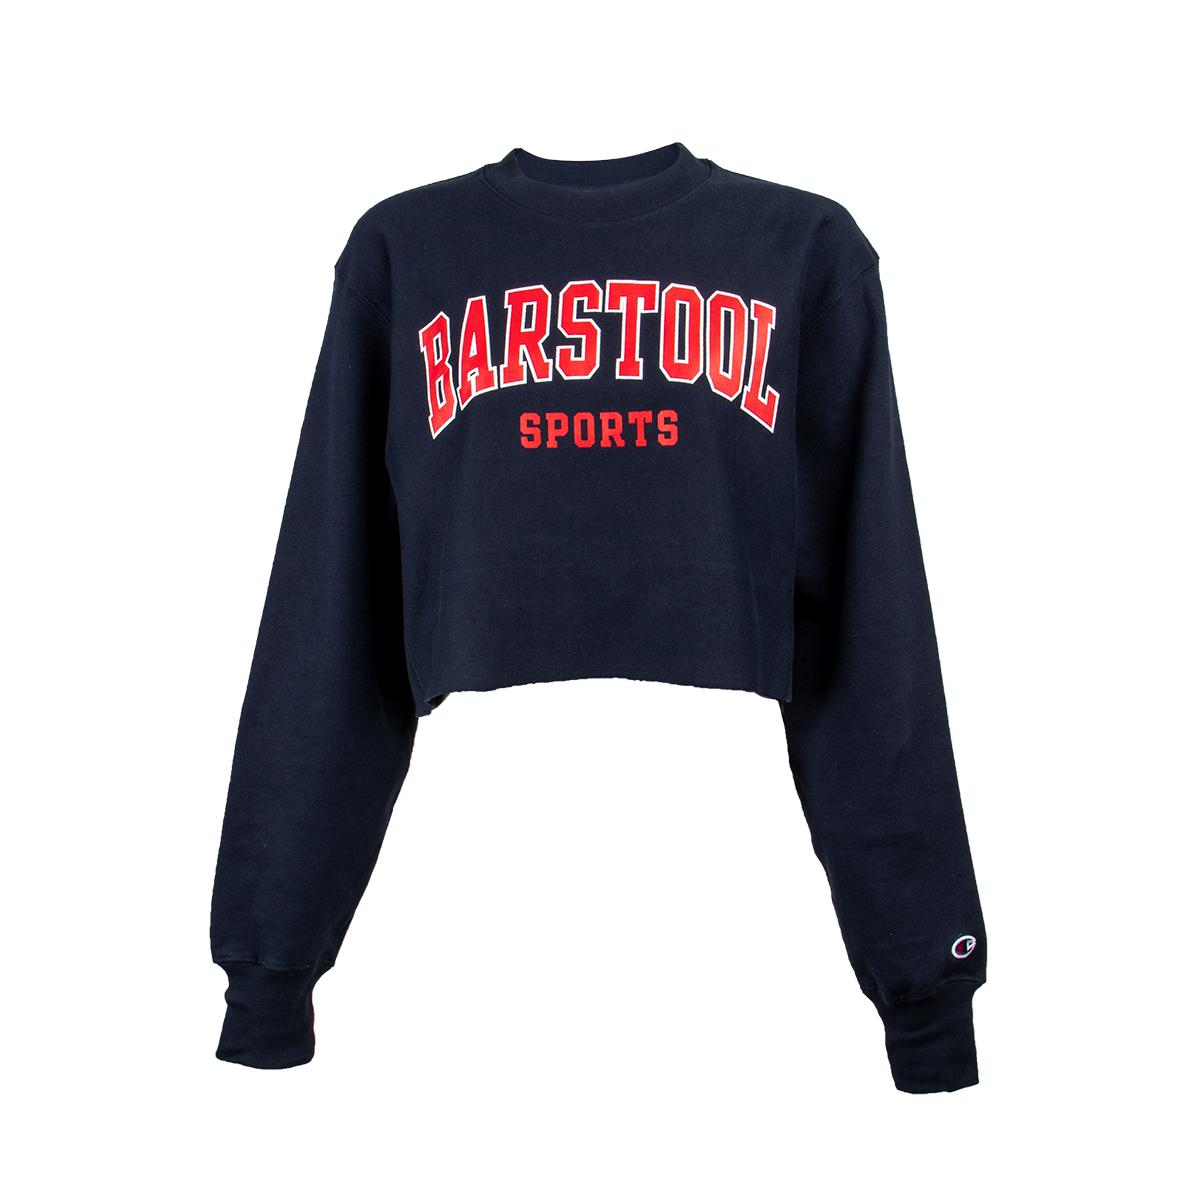 Barstool Sports Women's Champion Cropped Crewneck